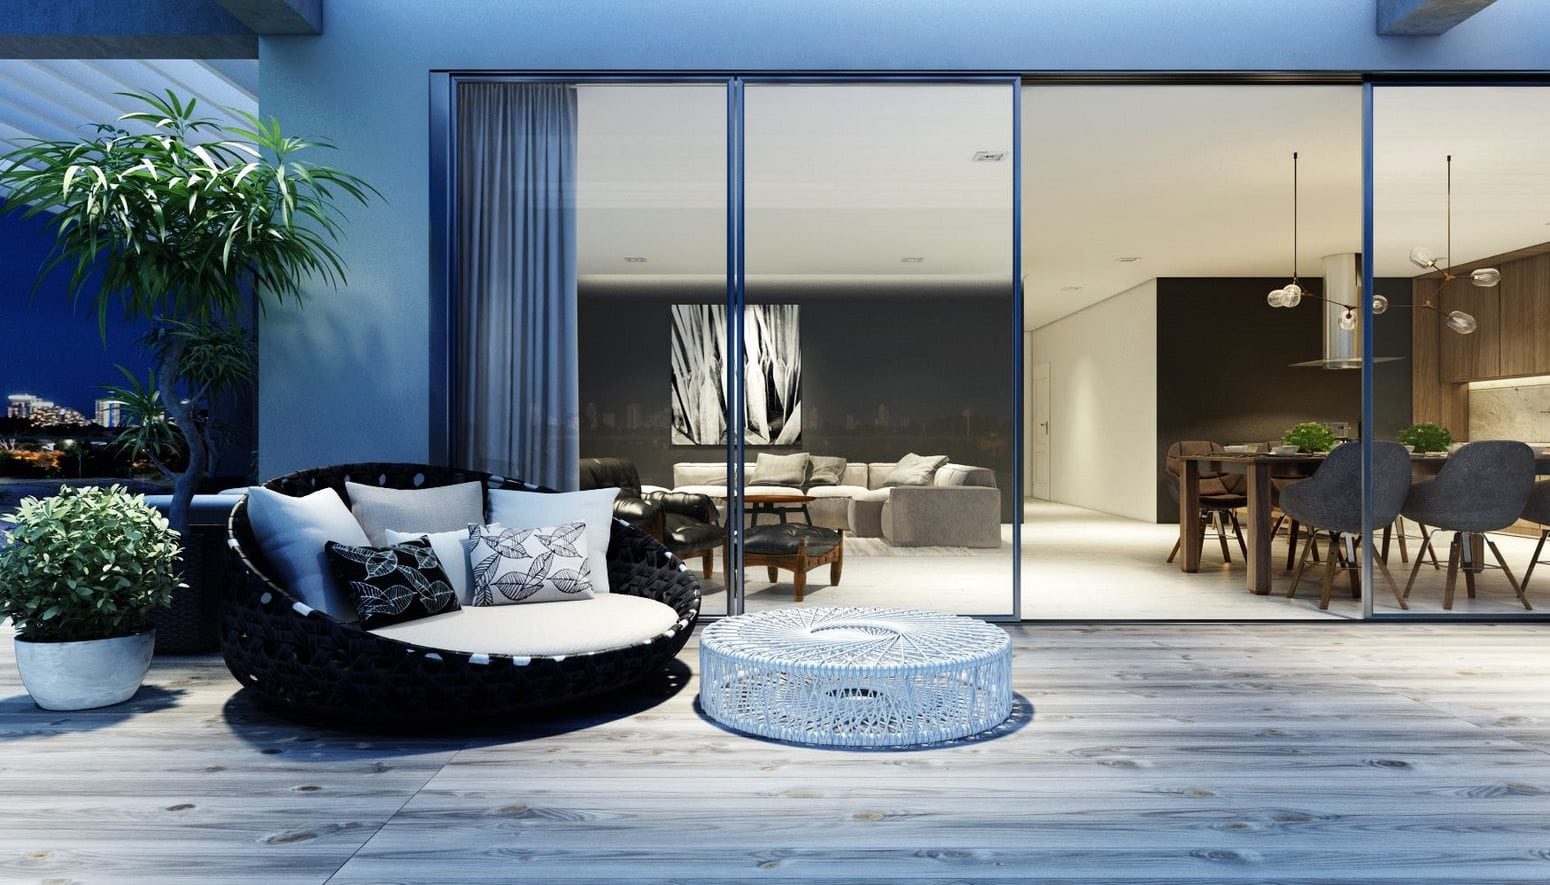 Perth 3d Rendering image in a dusk blue theme